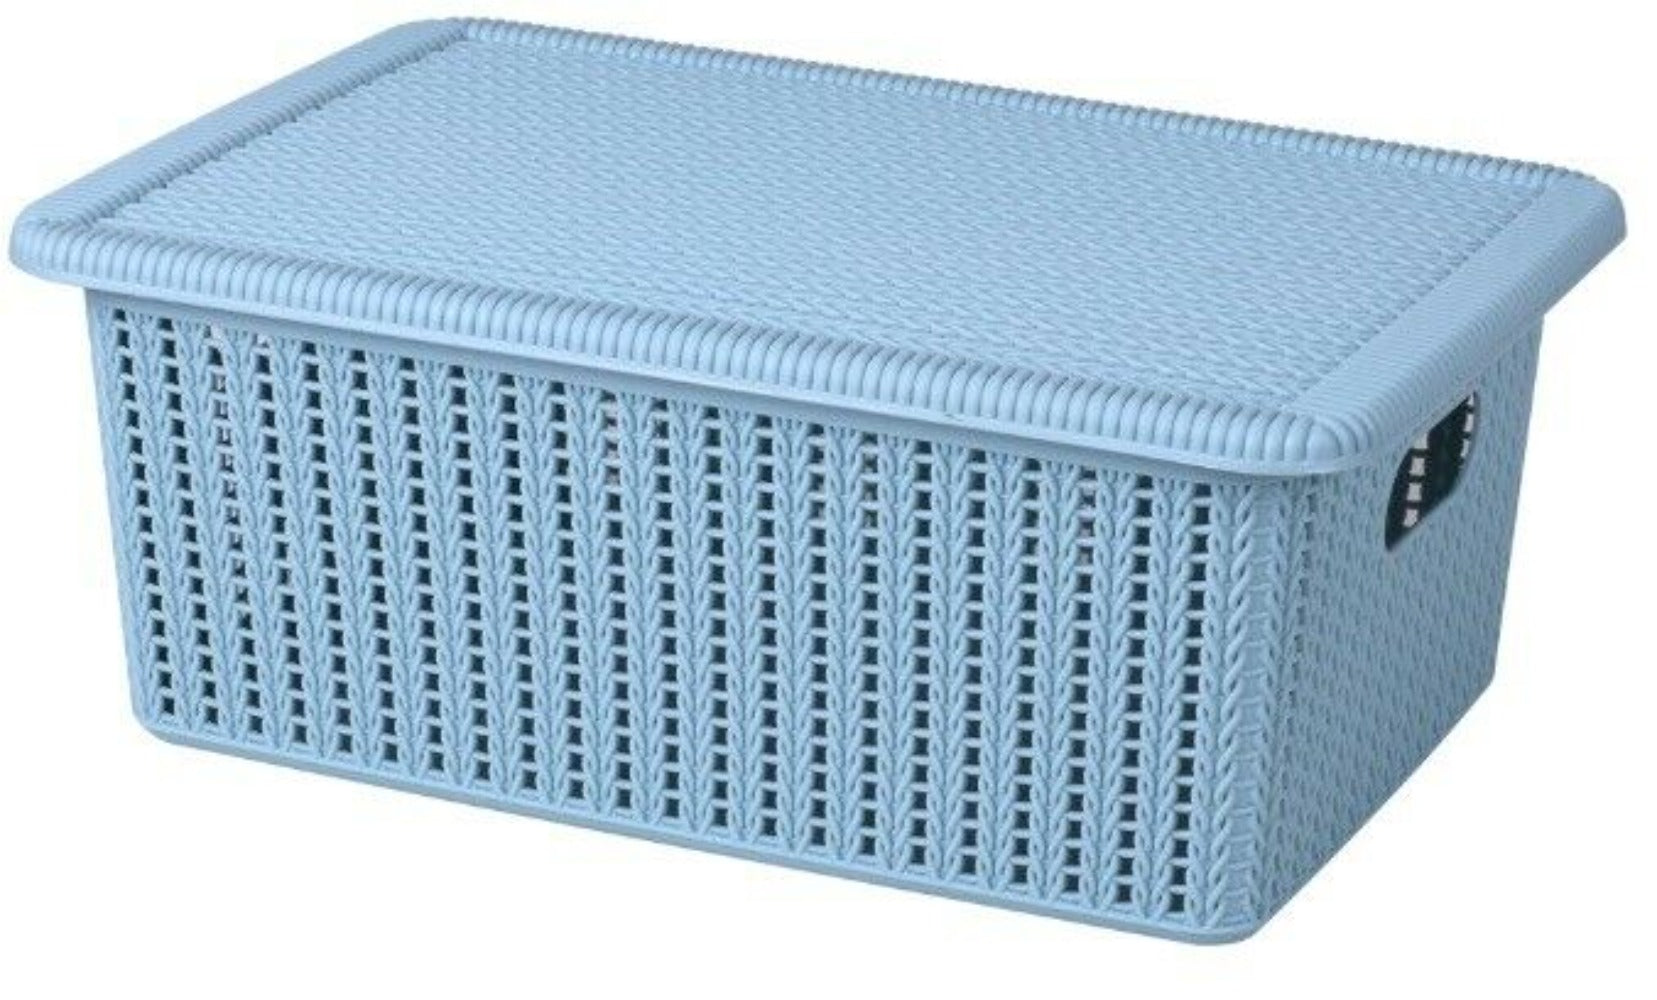 Small Storage Lidded Plastic Storage Boxes Rattan Design Blue or Grey